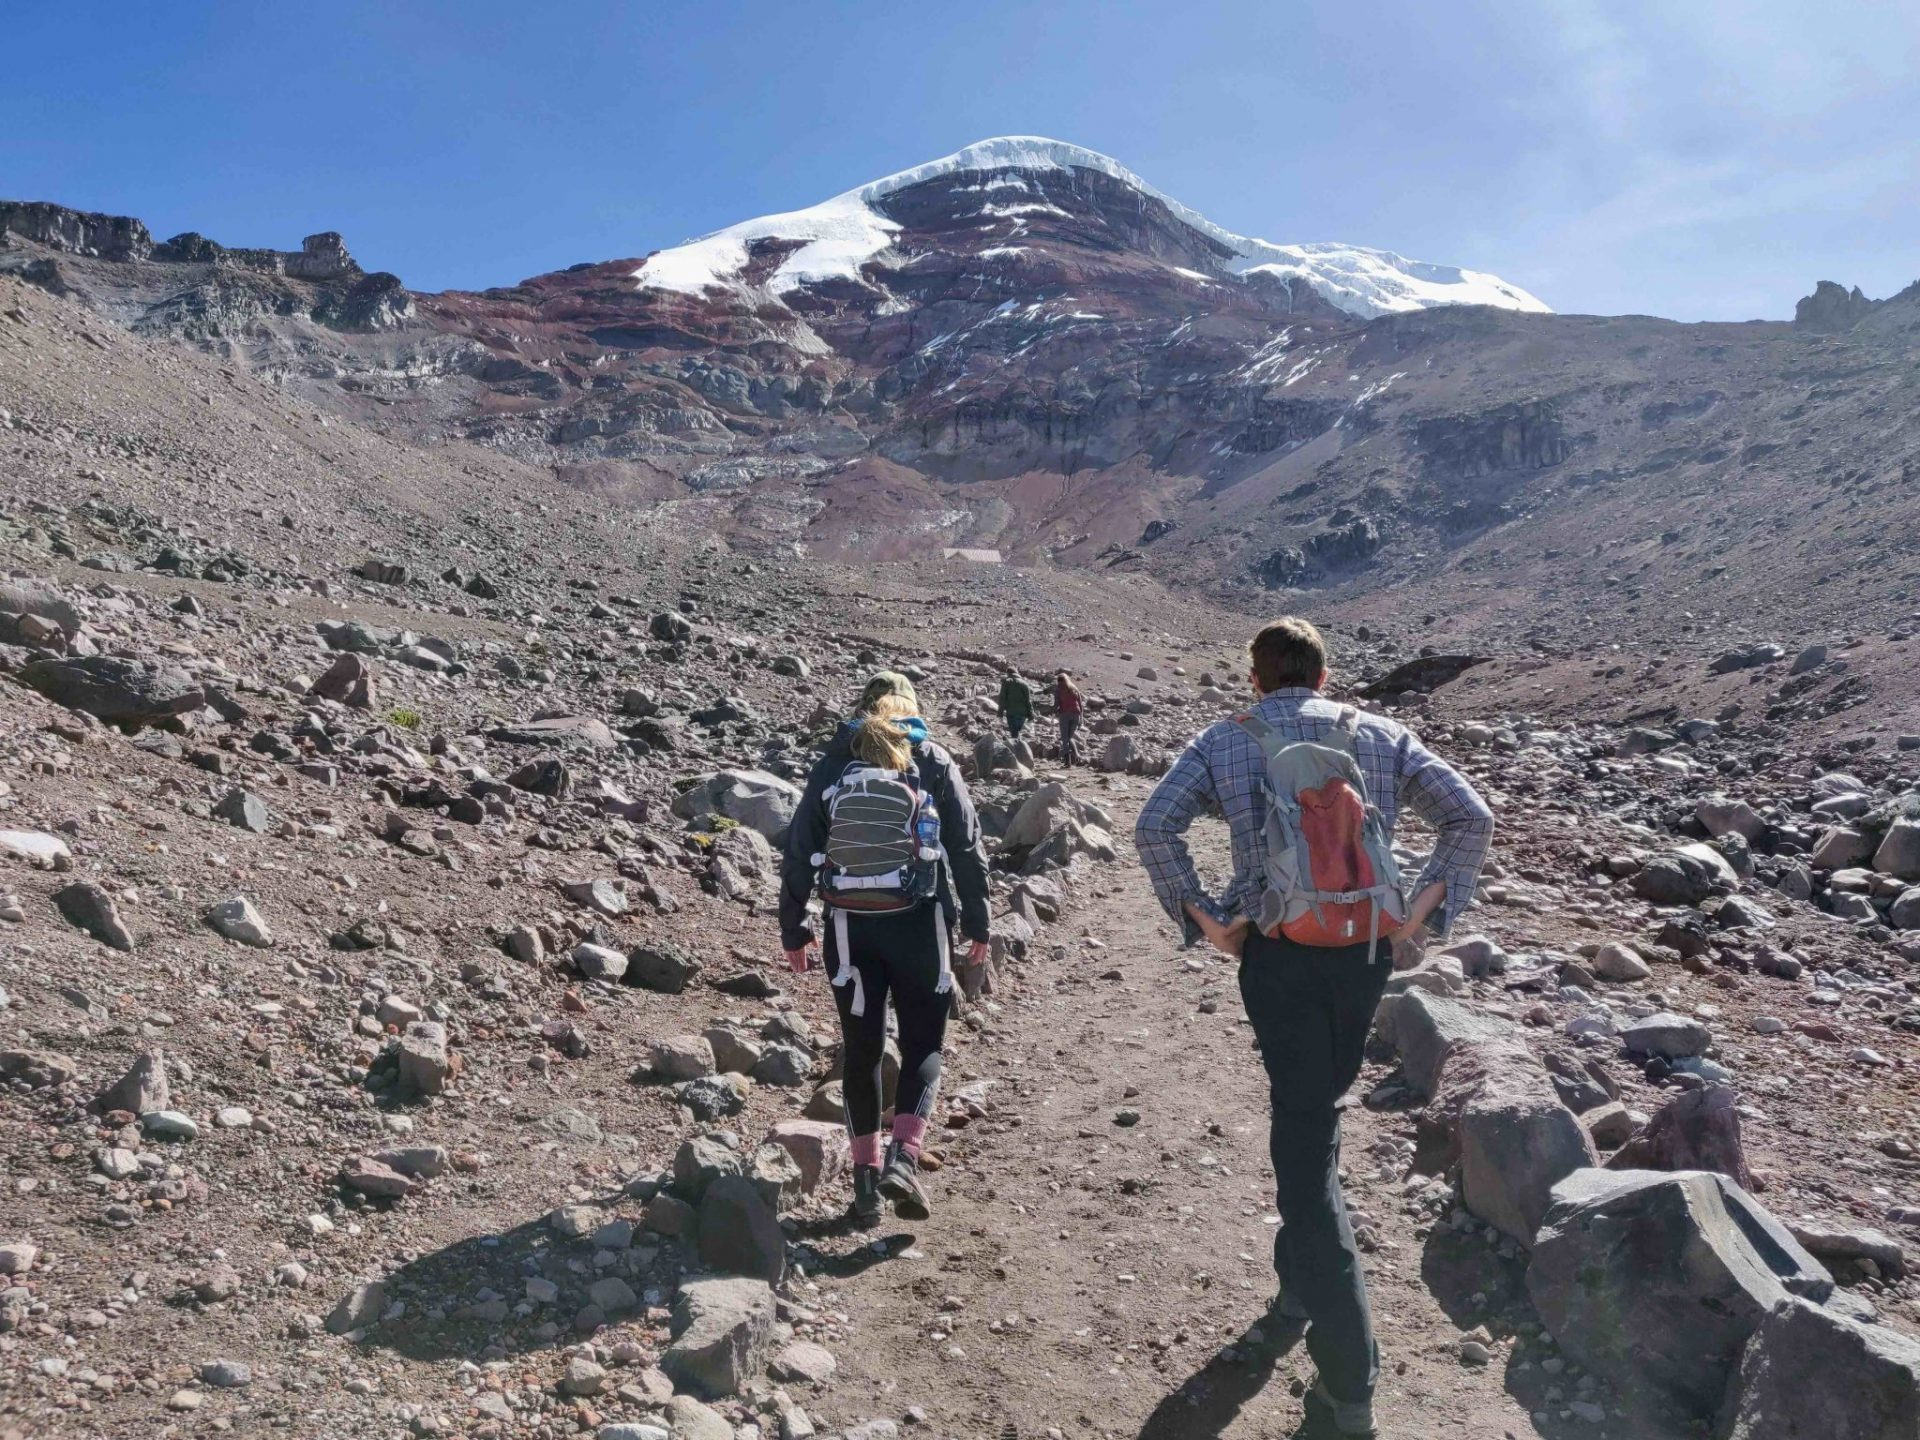 Riobamba Ecuador Travel Guide: Best Things to Do + Day Trips